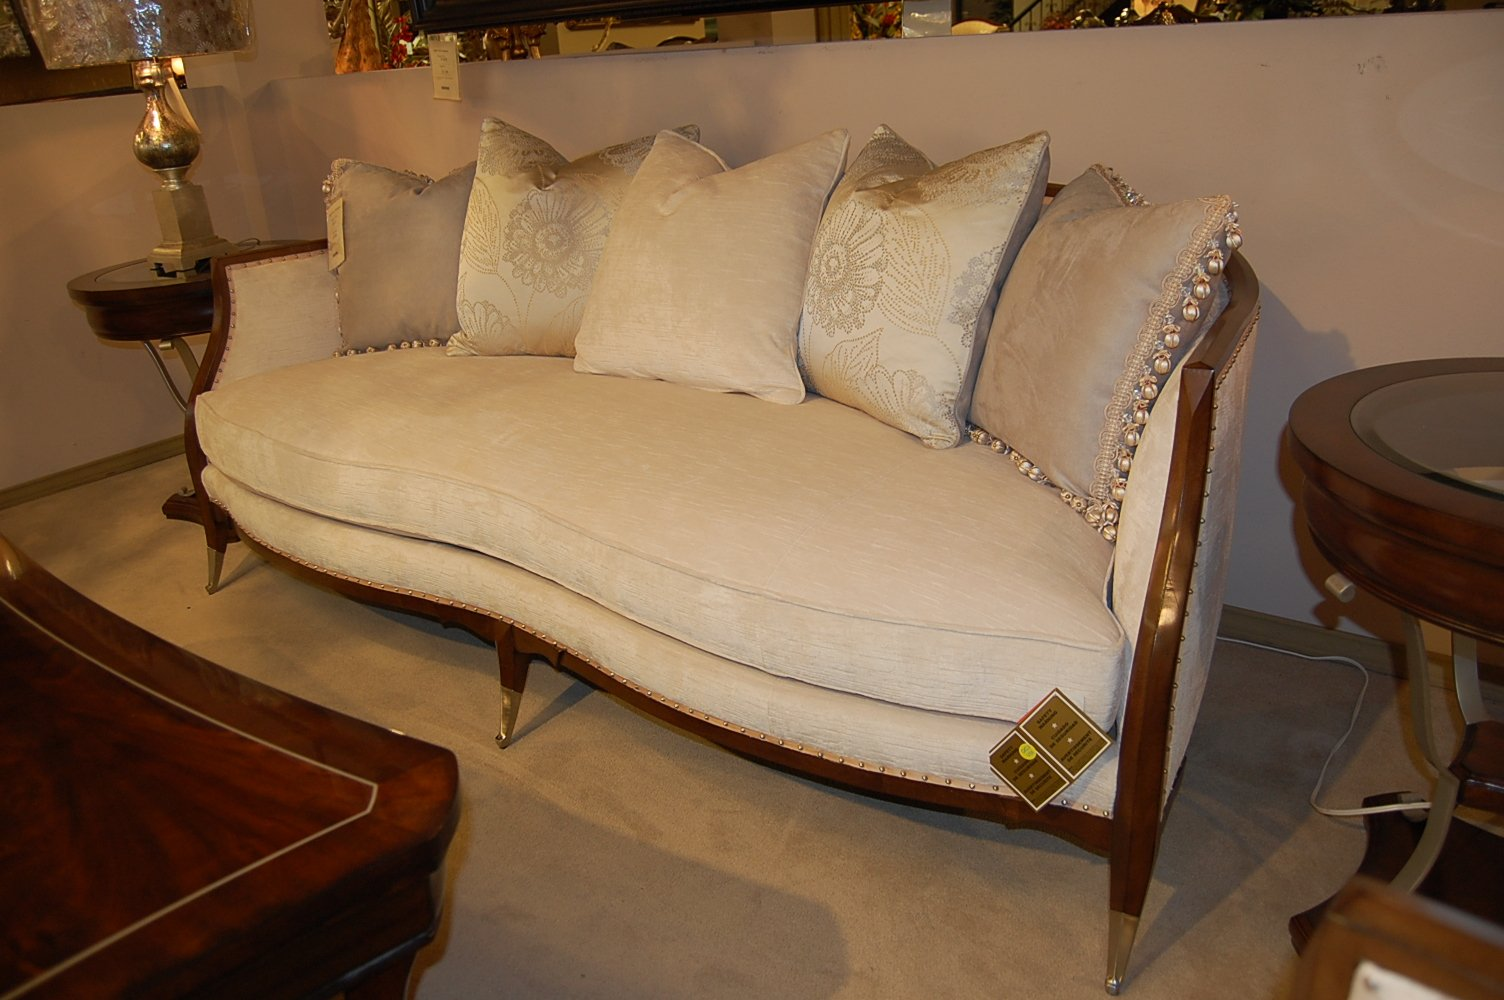 sofas houston sale how to remove stain from sofa living room furniture tx luxury